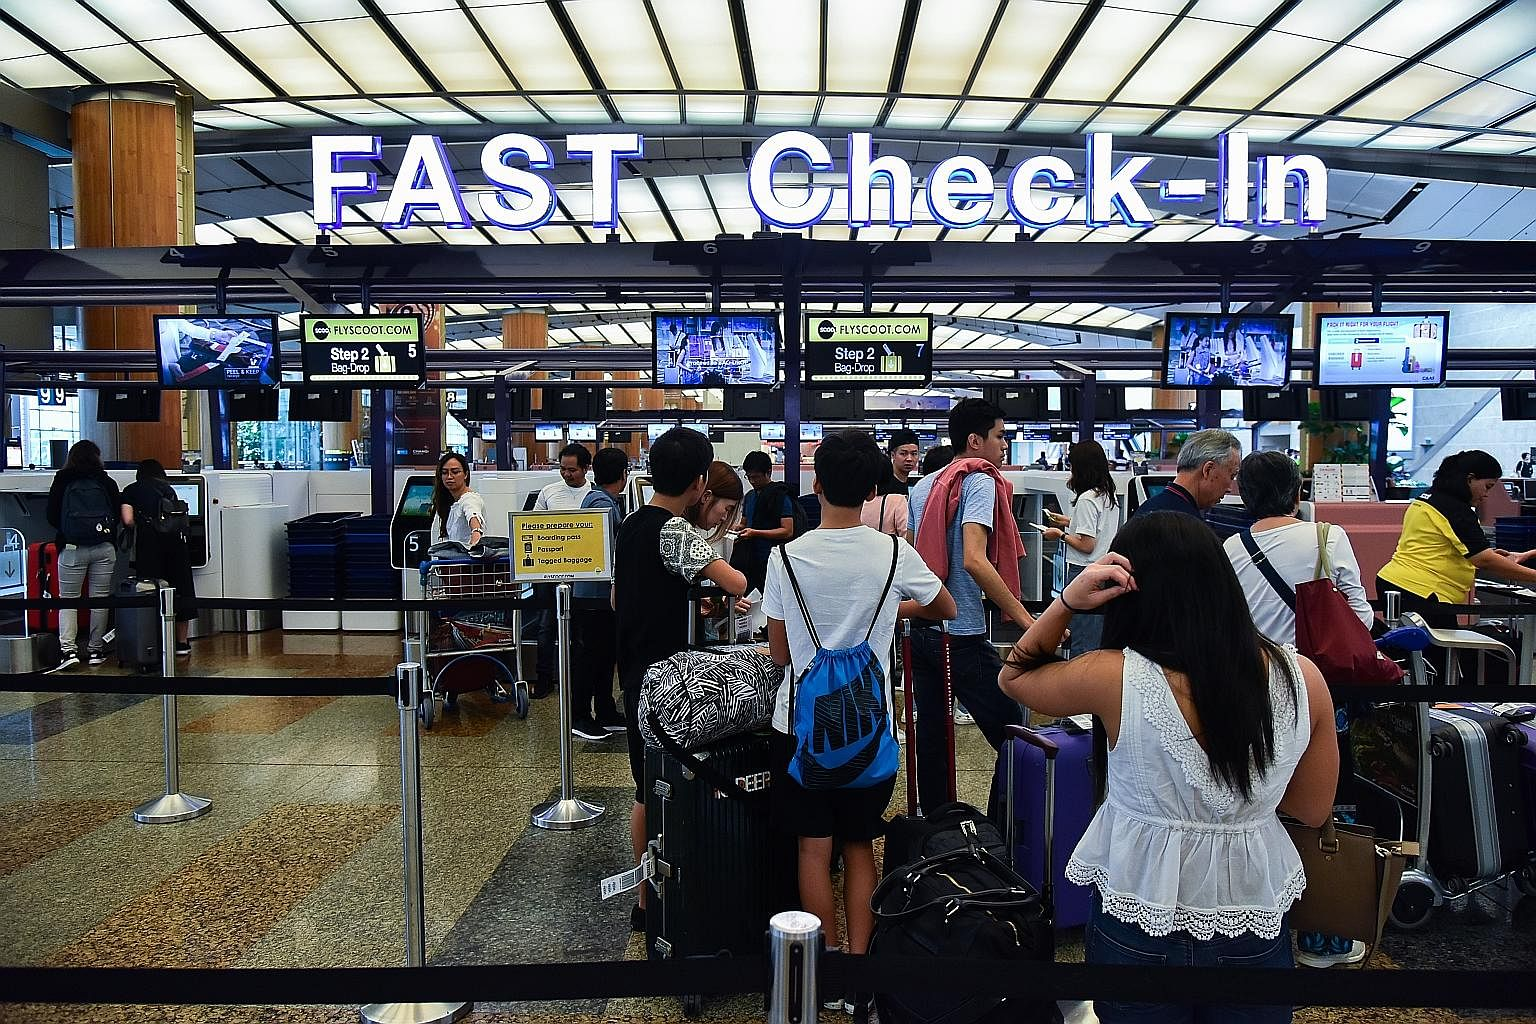 So far, 16 airlines have adopted Changi's Fast and Seamles